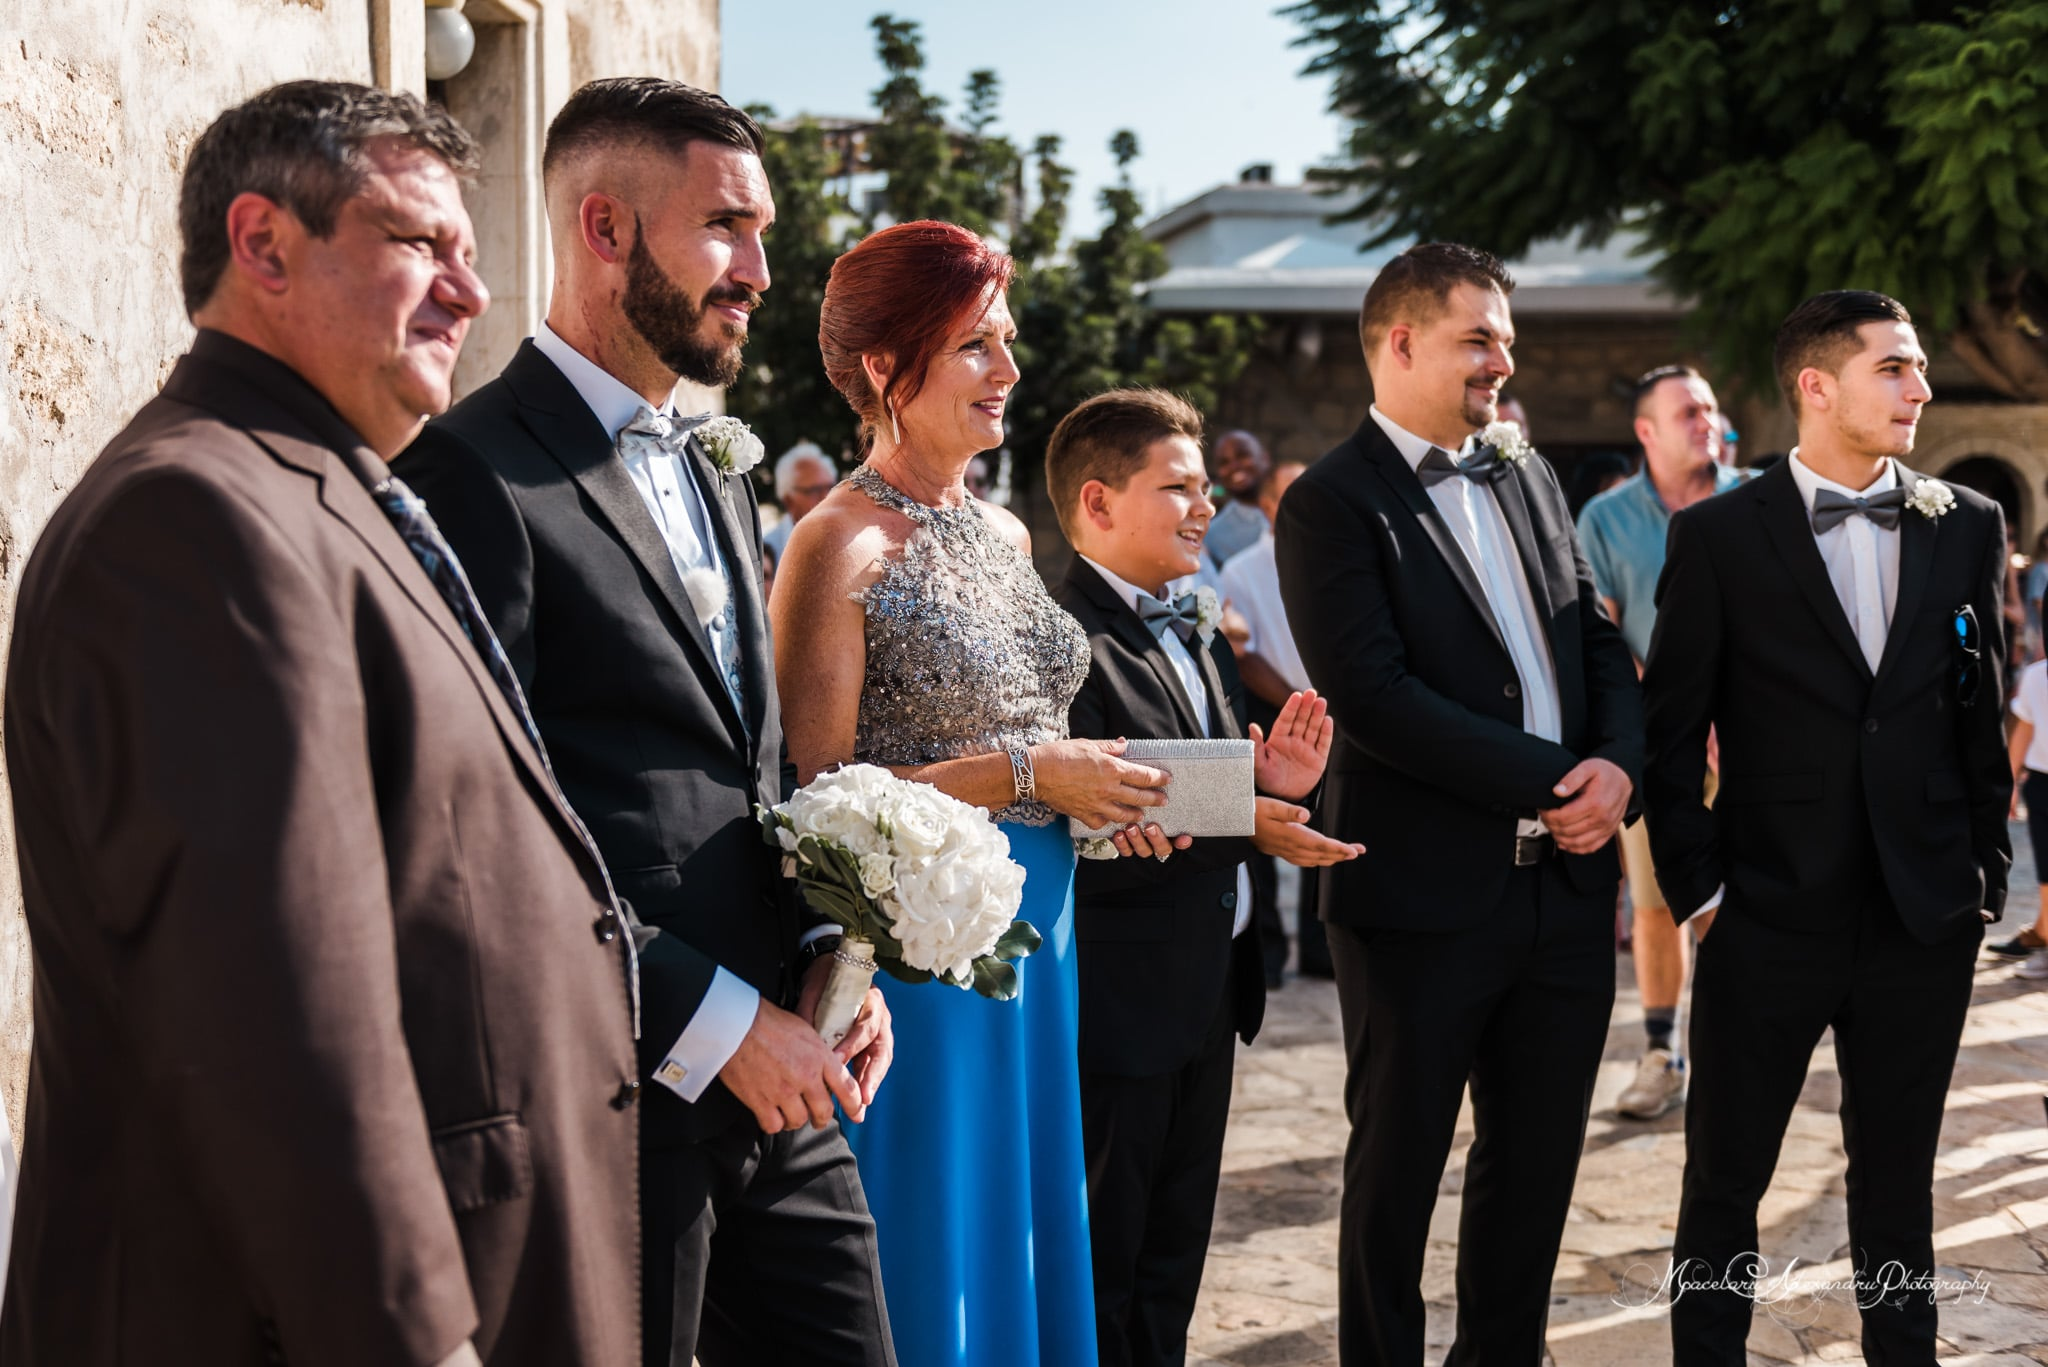 Wedding photography in Paphos - The church